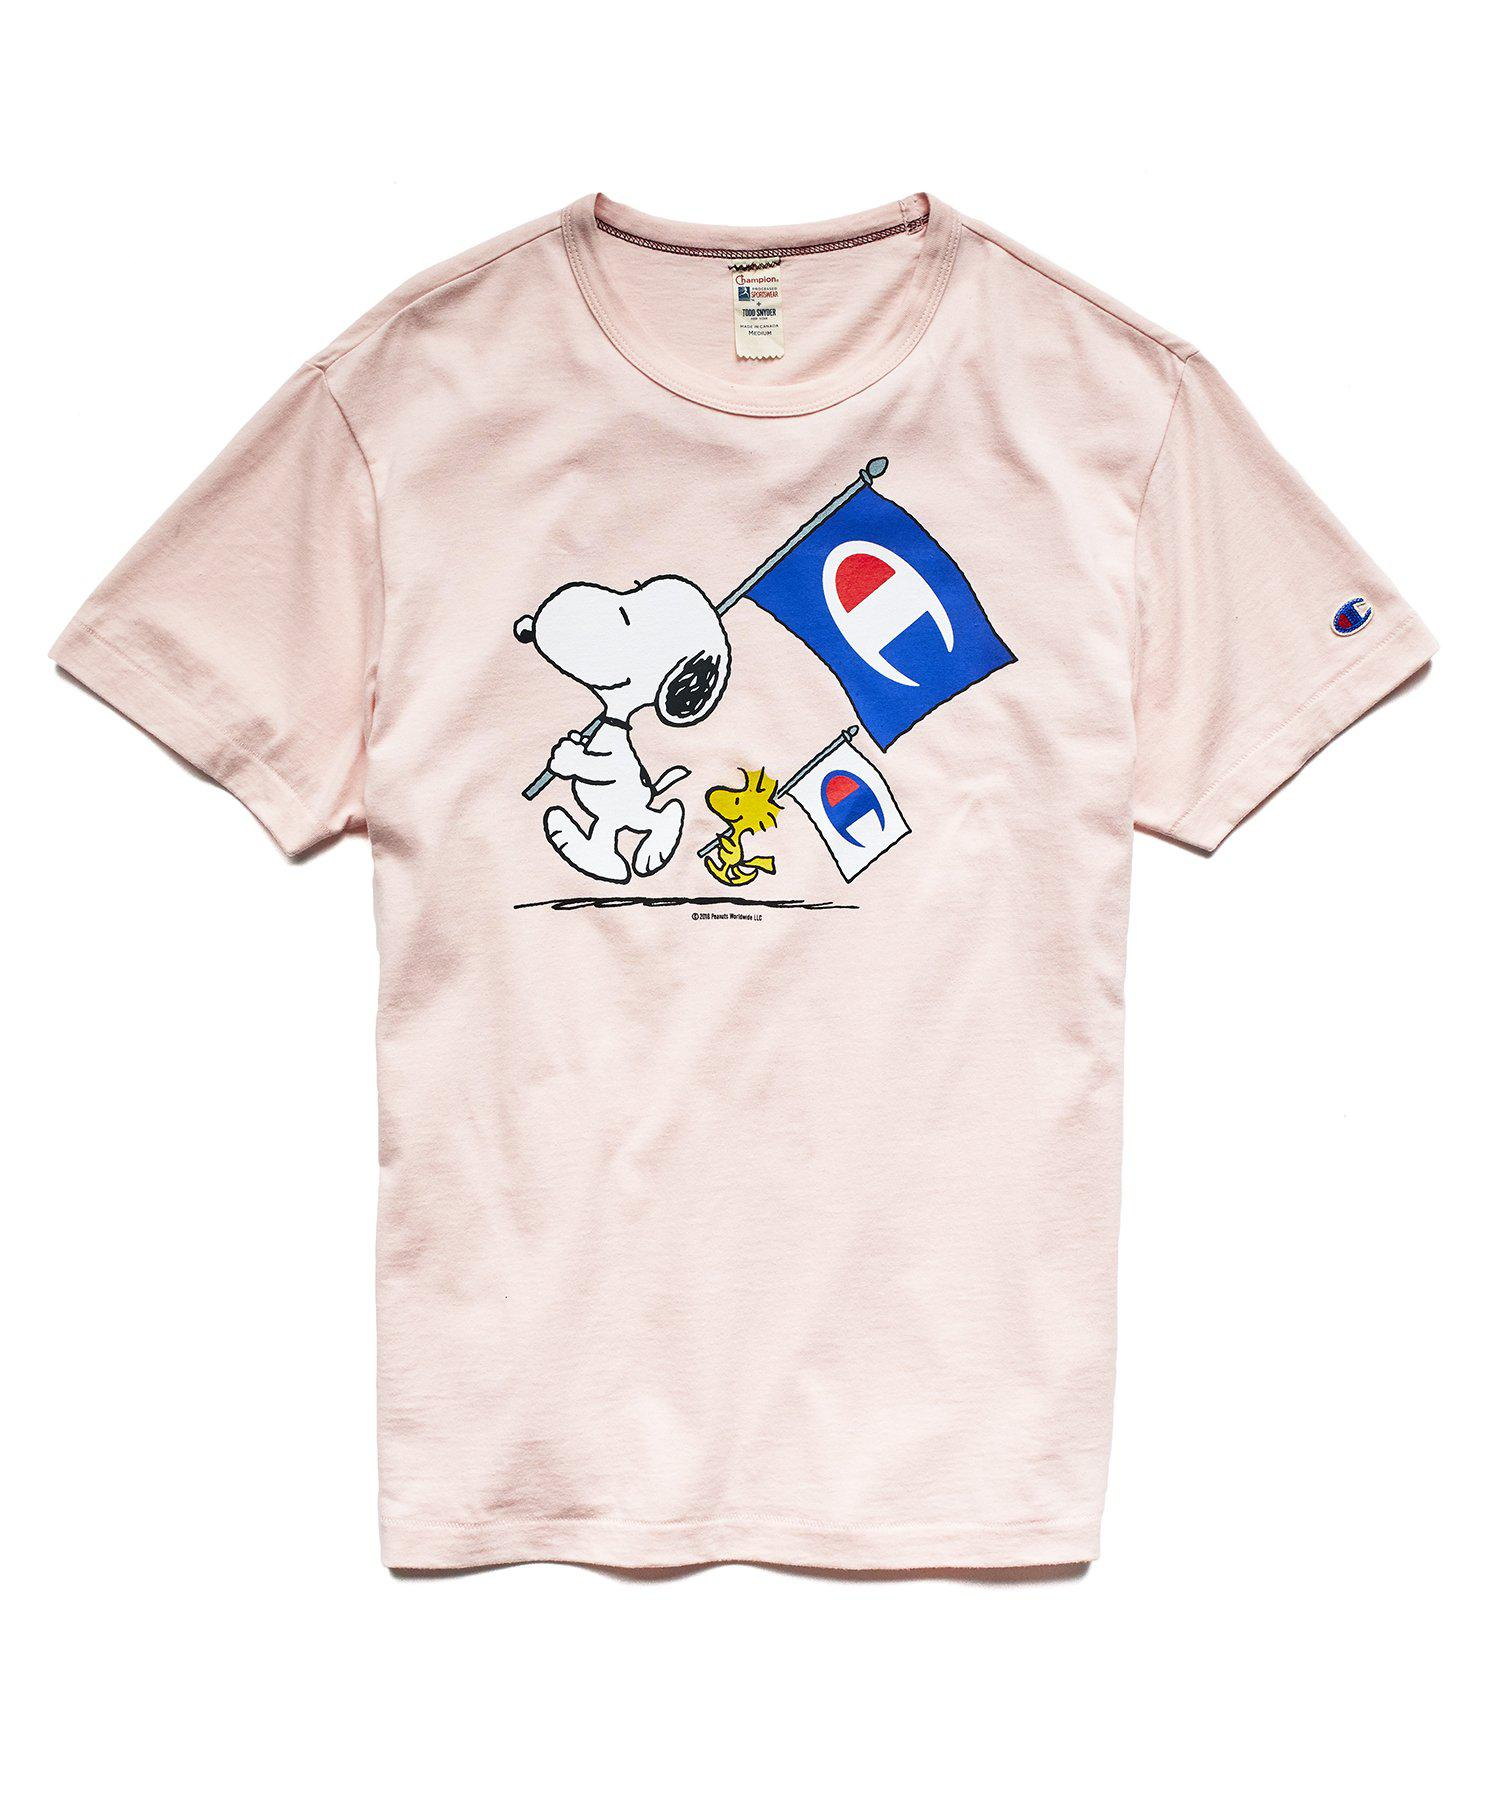 303db57b Todd Snyder Champion X Peanuts Snoopy And Woodstock Flag Tee In ...